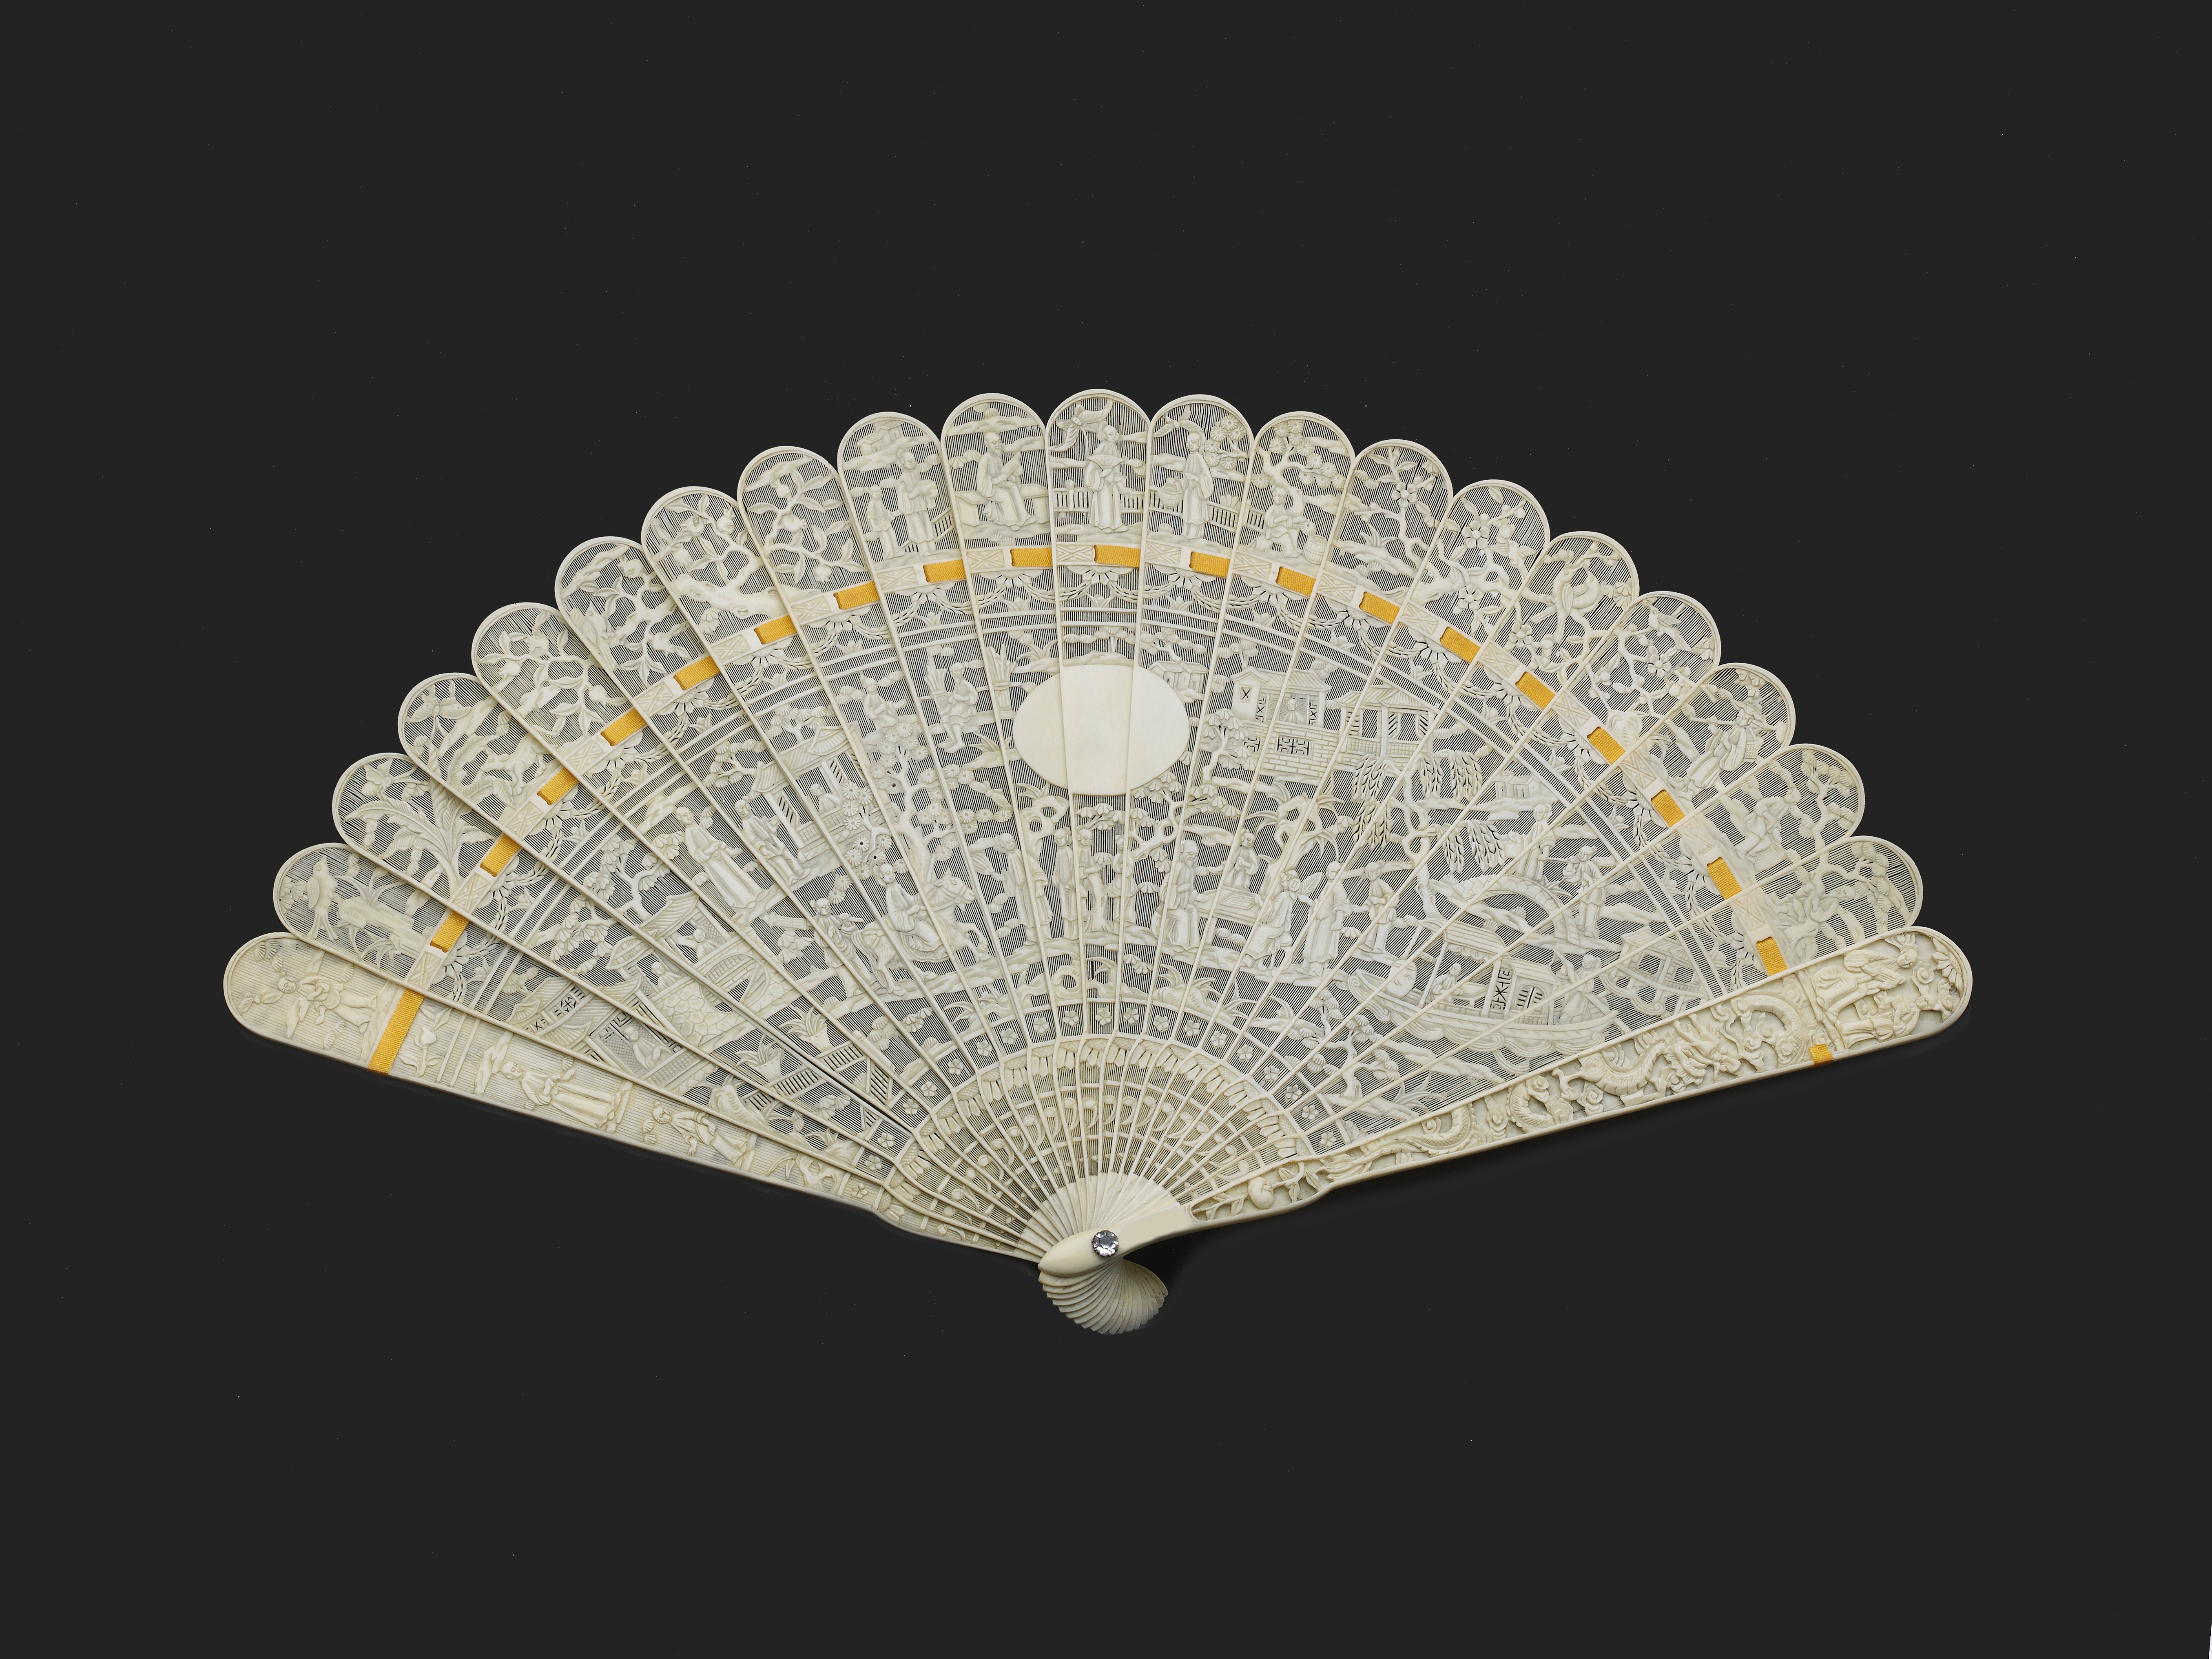 Lot 5 - A CHINESE EXPORT IVORY BRISE FAN, QING DYNASTY, JIAQING PERIOD, CIRCA 1810-1820